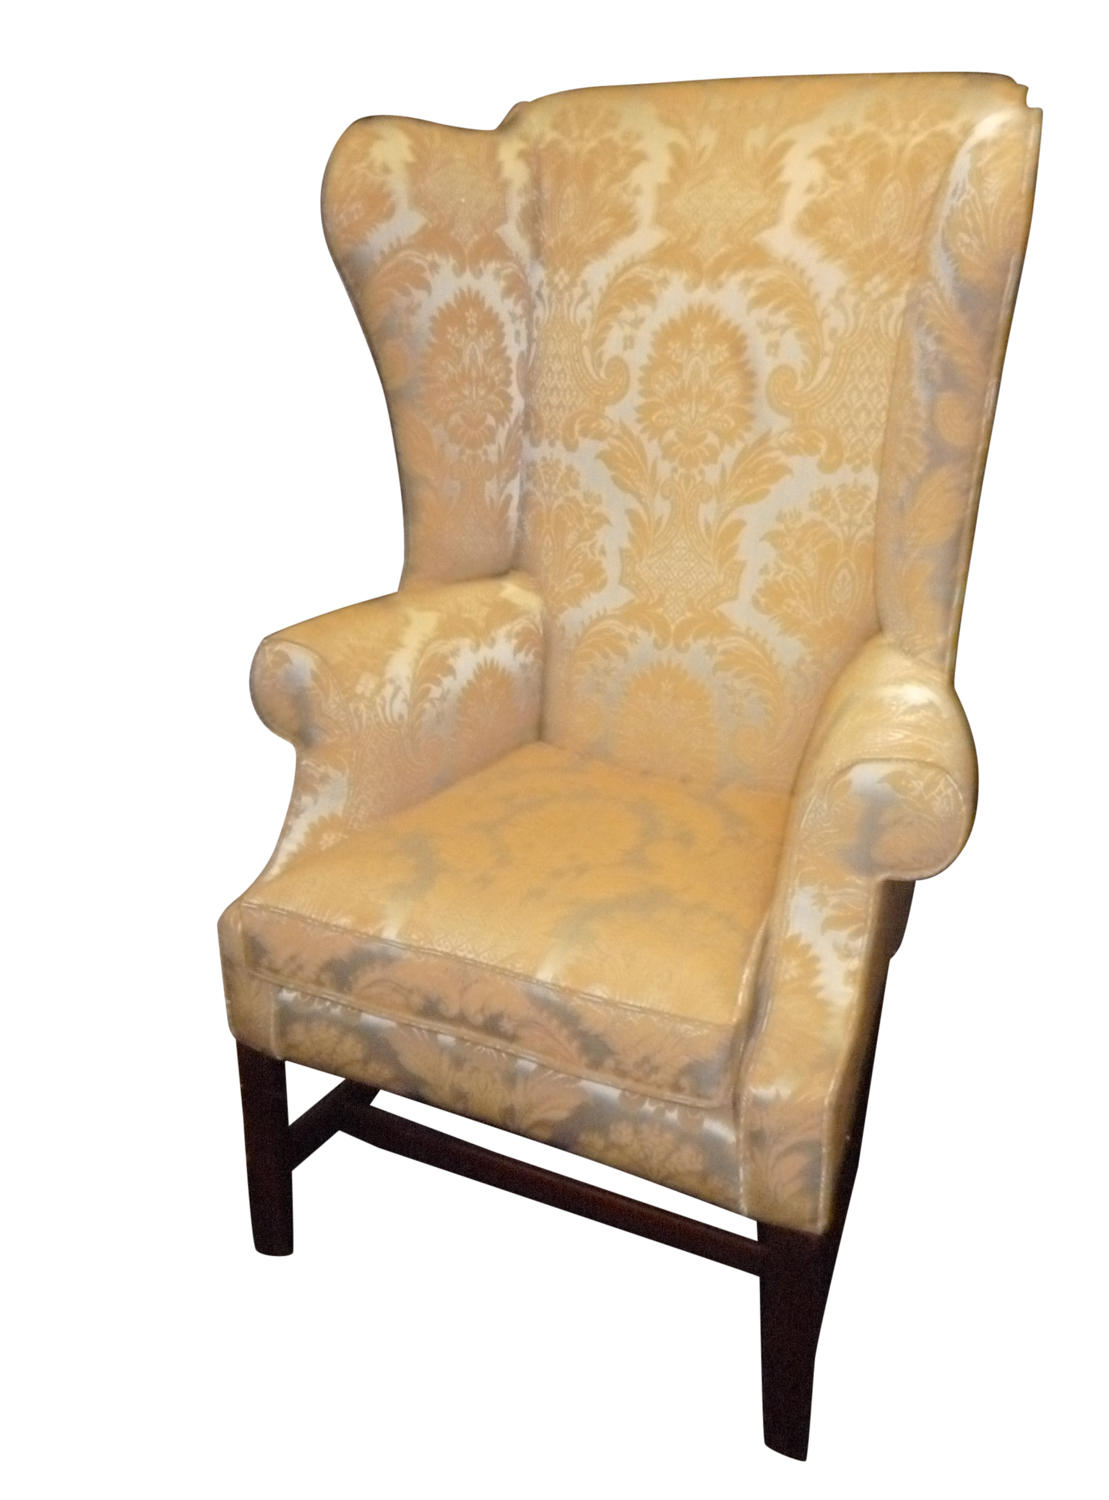 A small Georgian mahogany wing chair, circa 1800